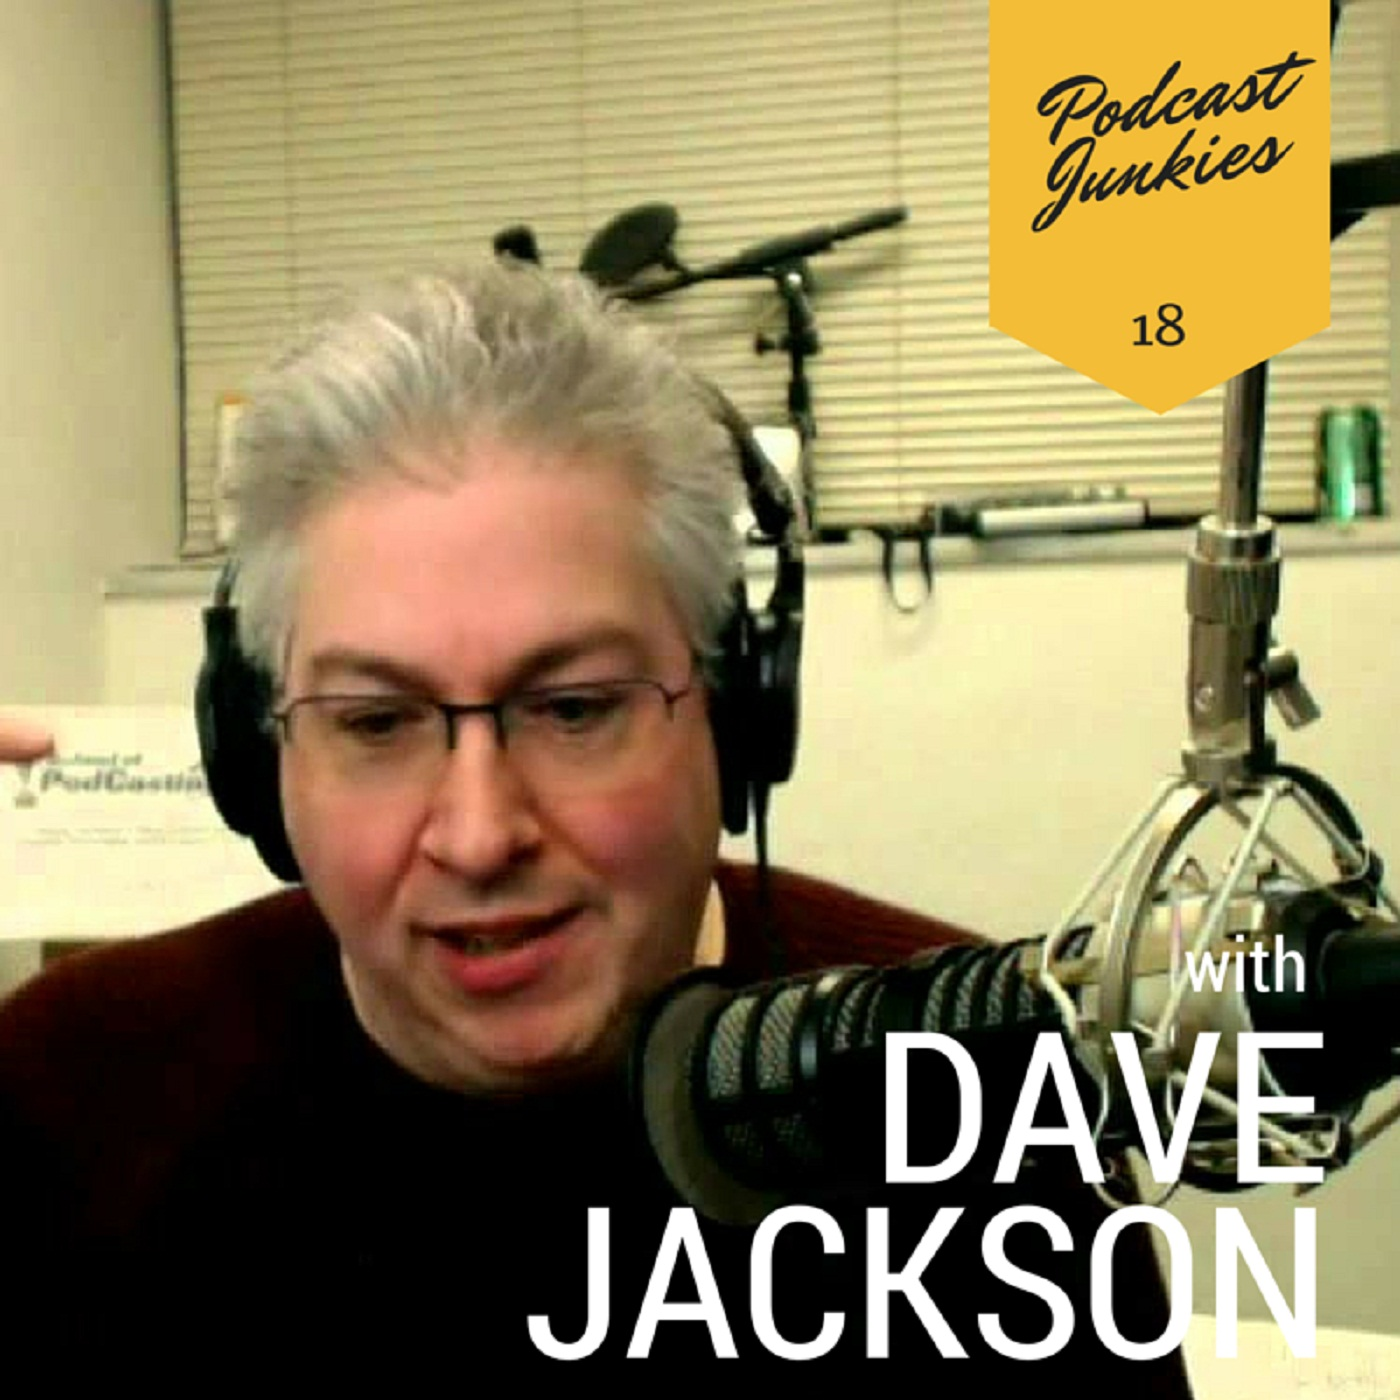 018 Dave Jackson | The Importance Of Providing Your Own Unique Voice